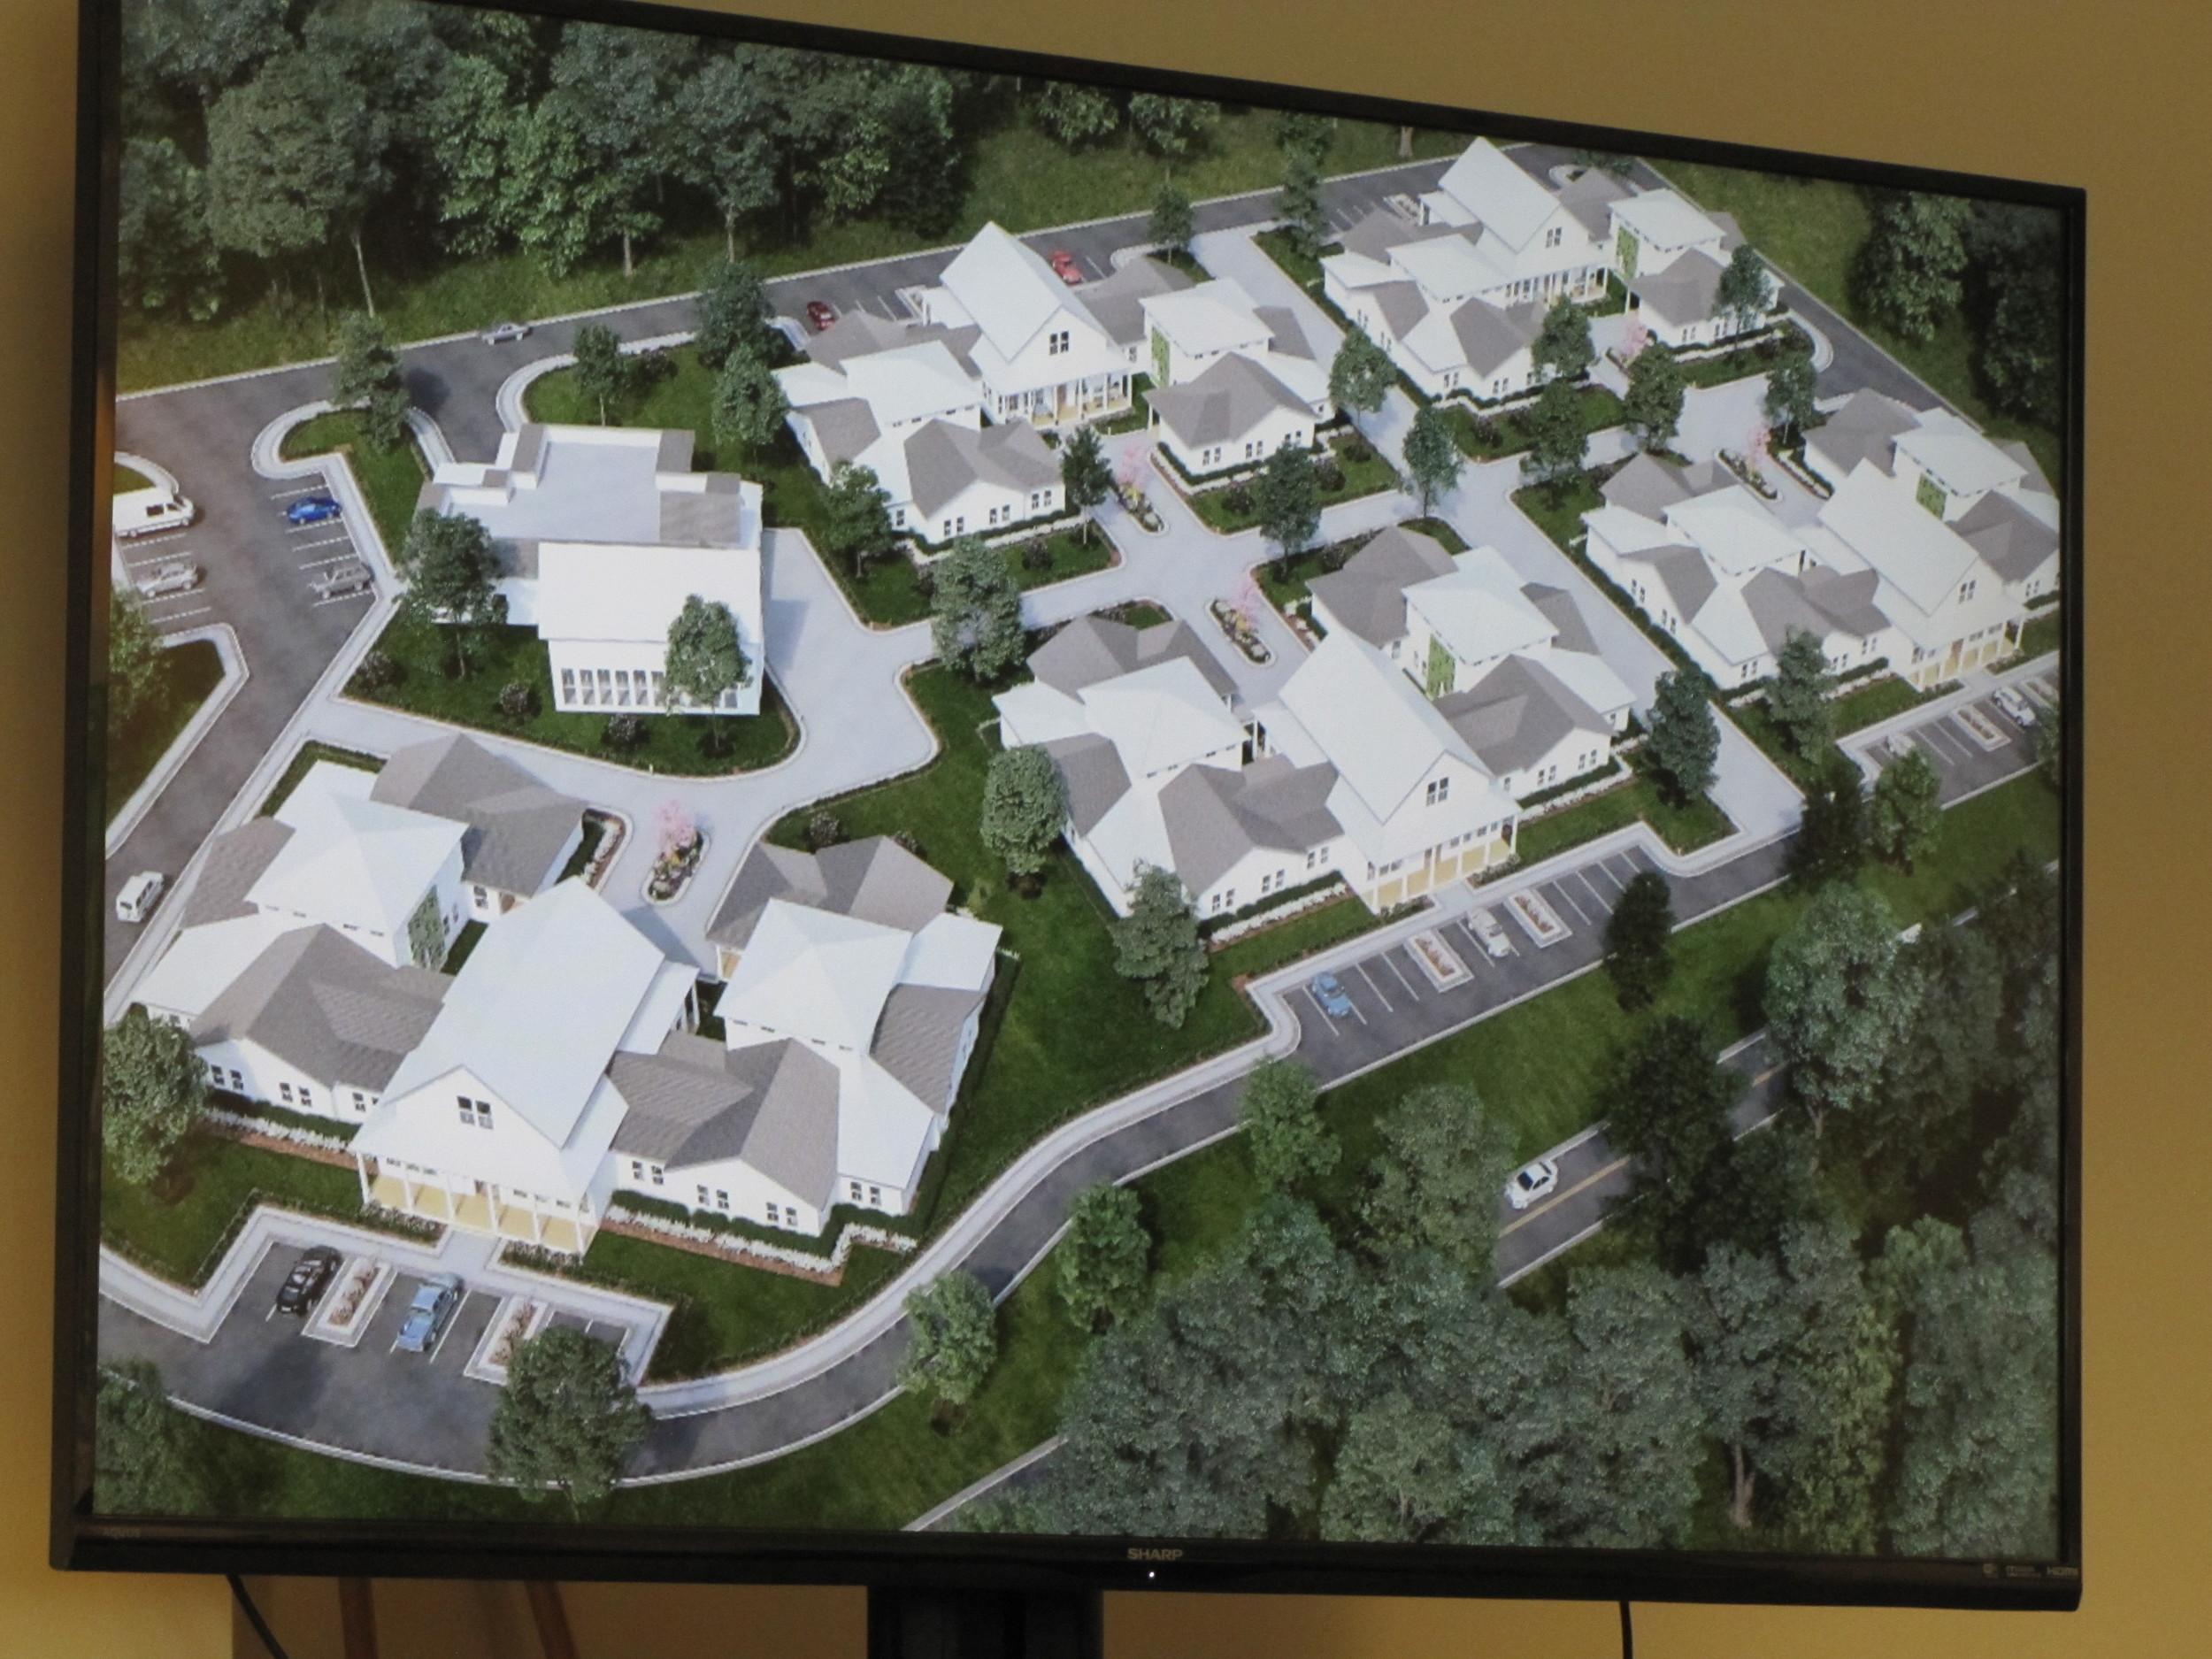 A virtual rendering of what the completed senior living center proposed for Peeples Valley Road may resemble.